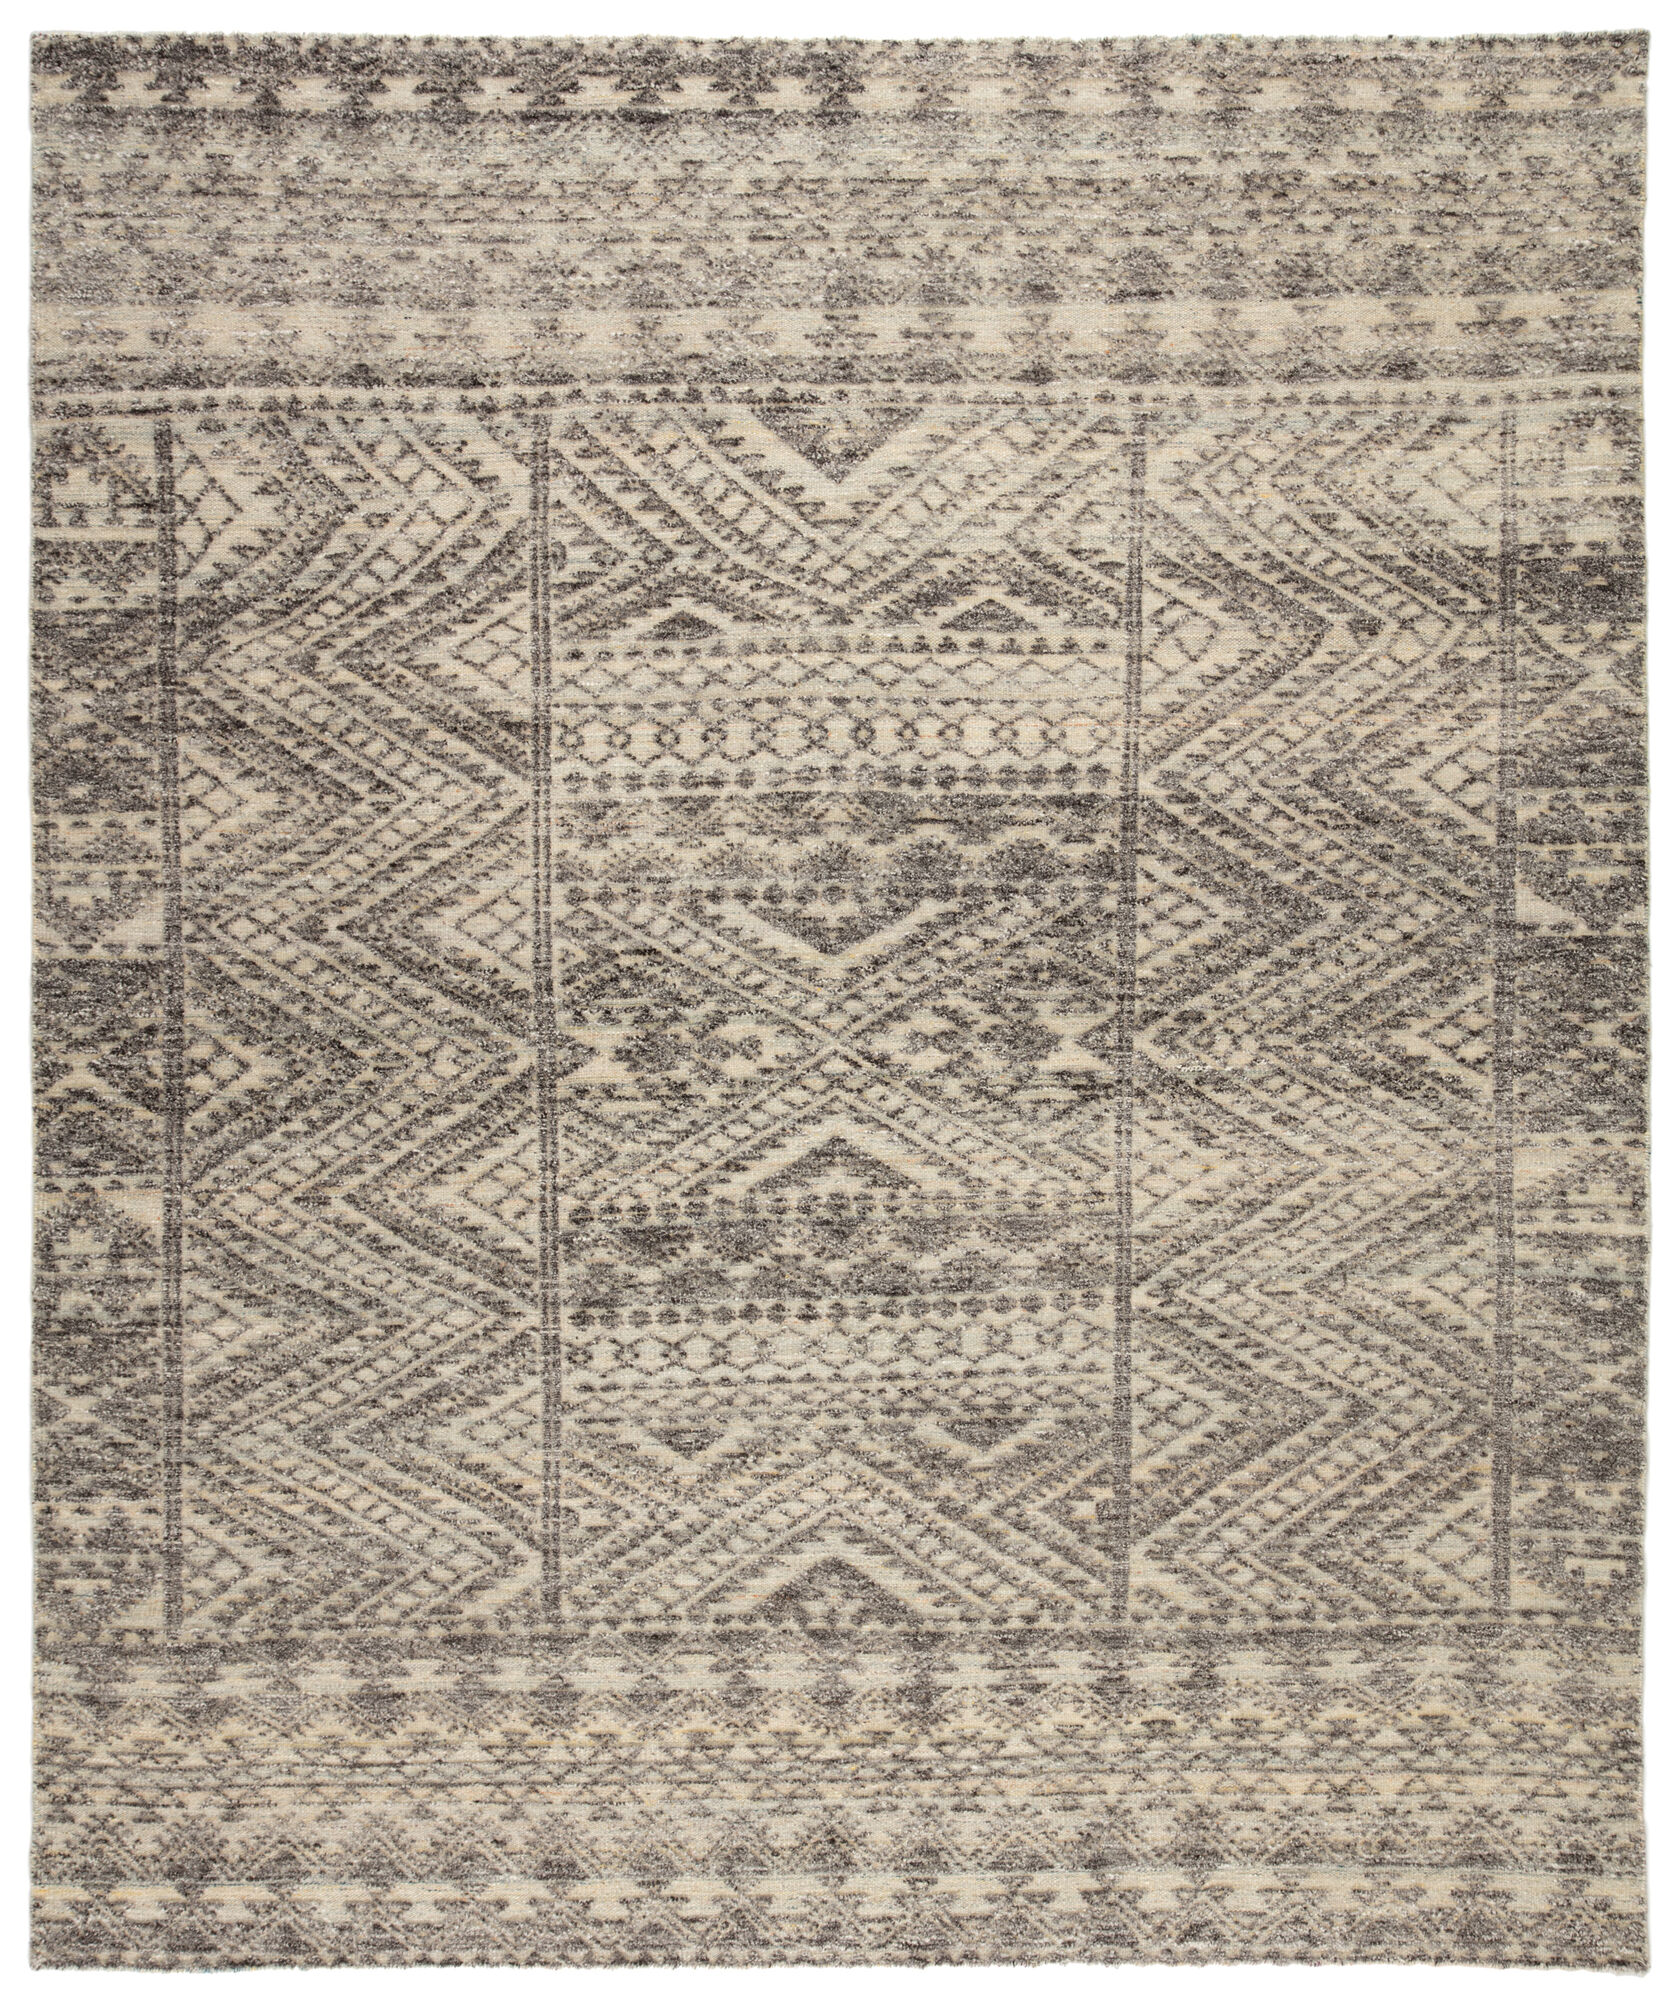 Prentice Hand Knotted Geometric Dark Gray Taupe Area Rug 5 X8 Mathis Brothers Furniture